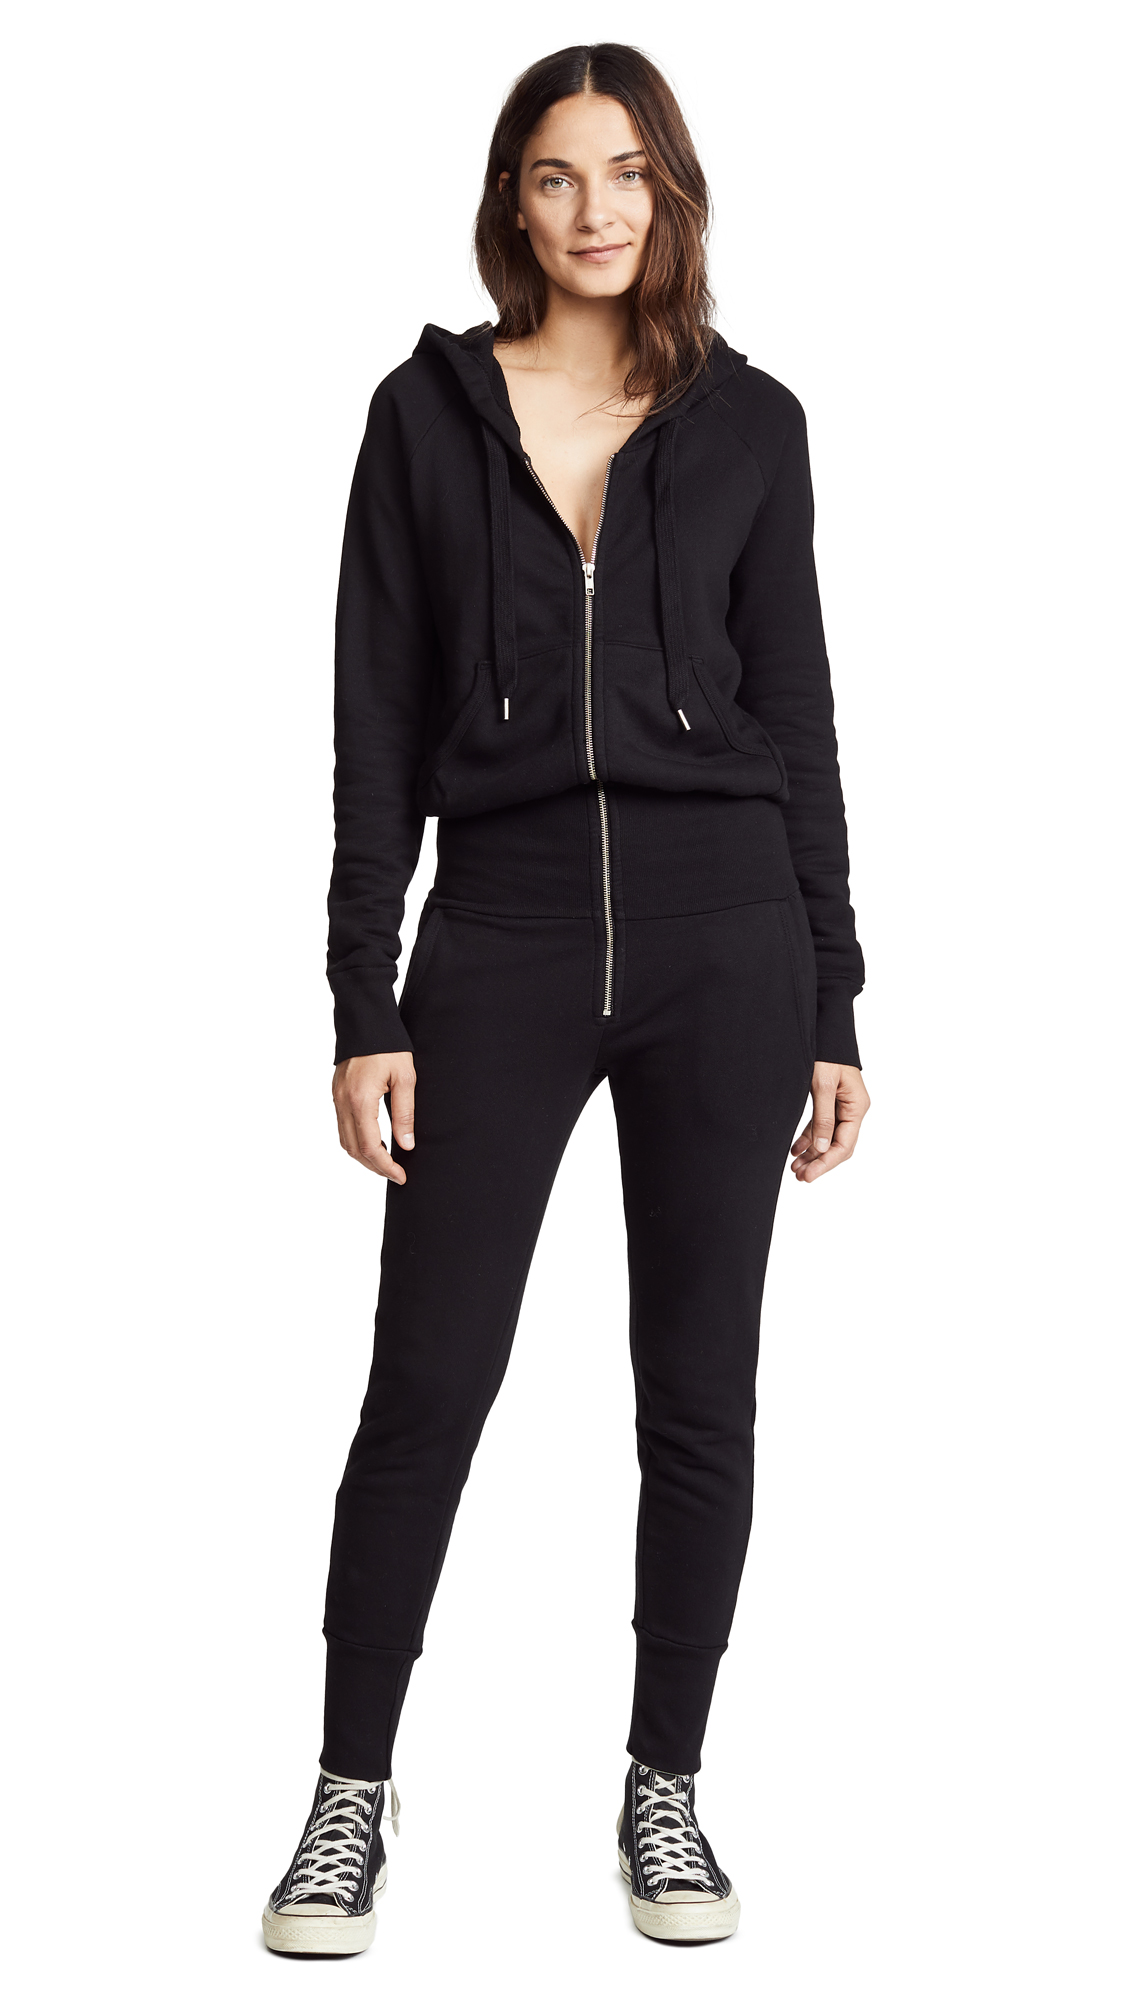 NSF Stasia Jumpsuit In Black